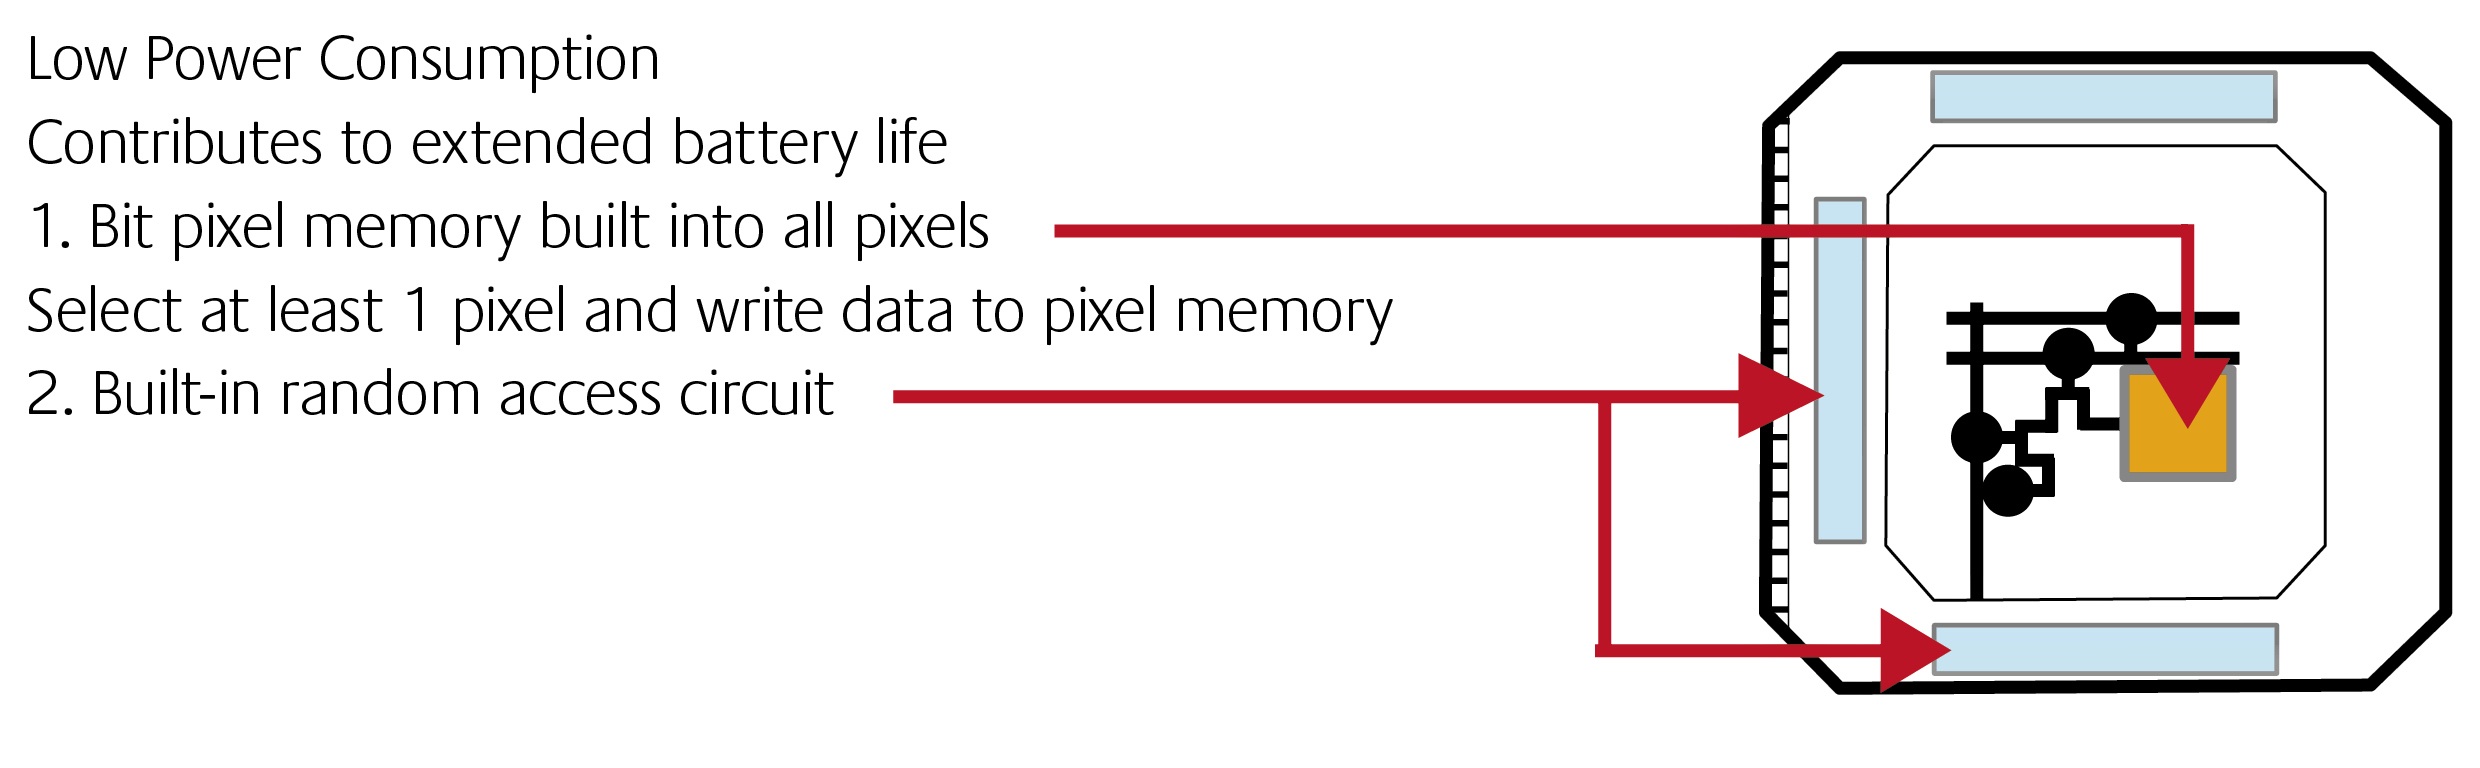 Memory-in-pixel technology reduces LCD power consumption thumbnail